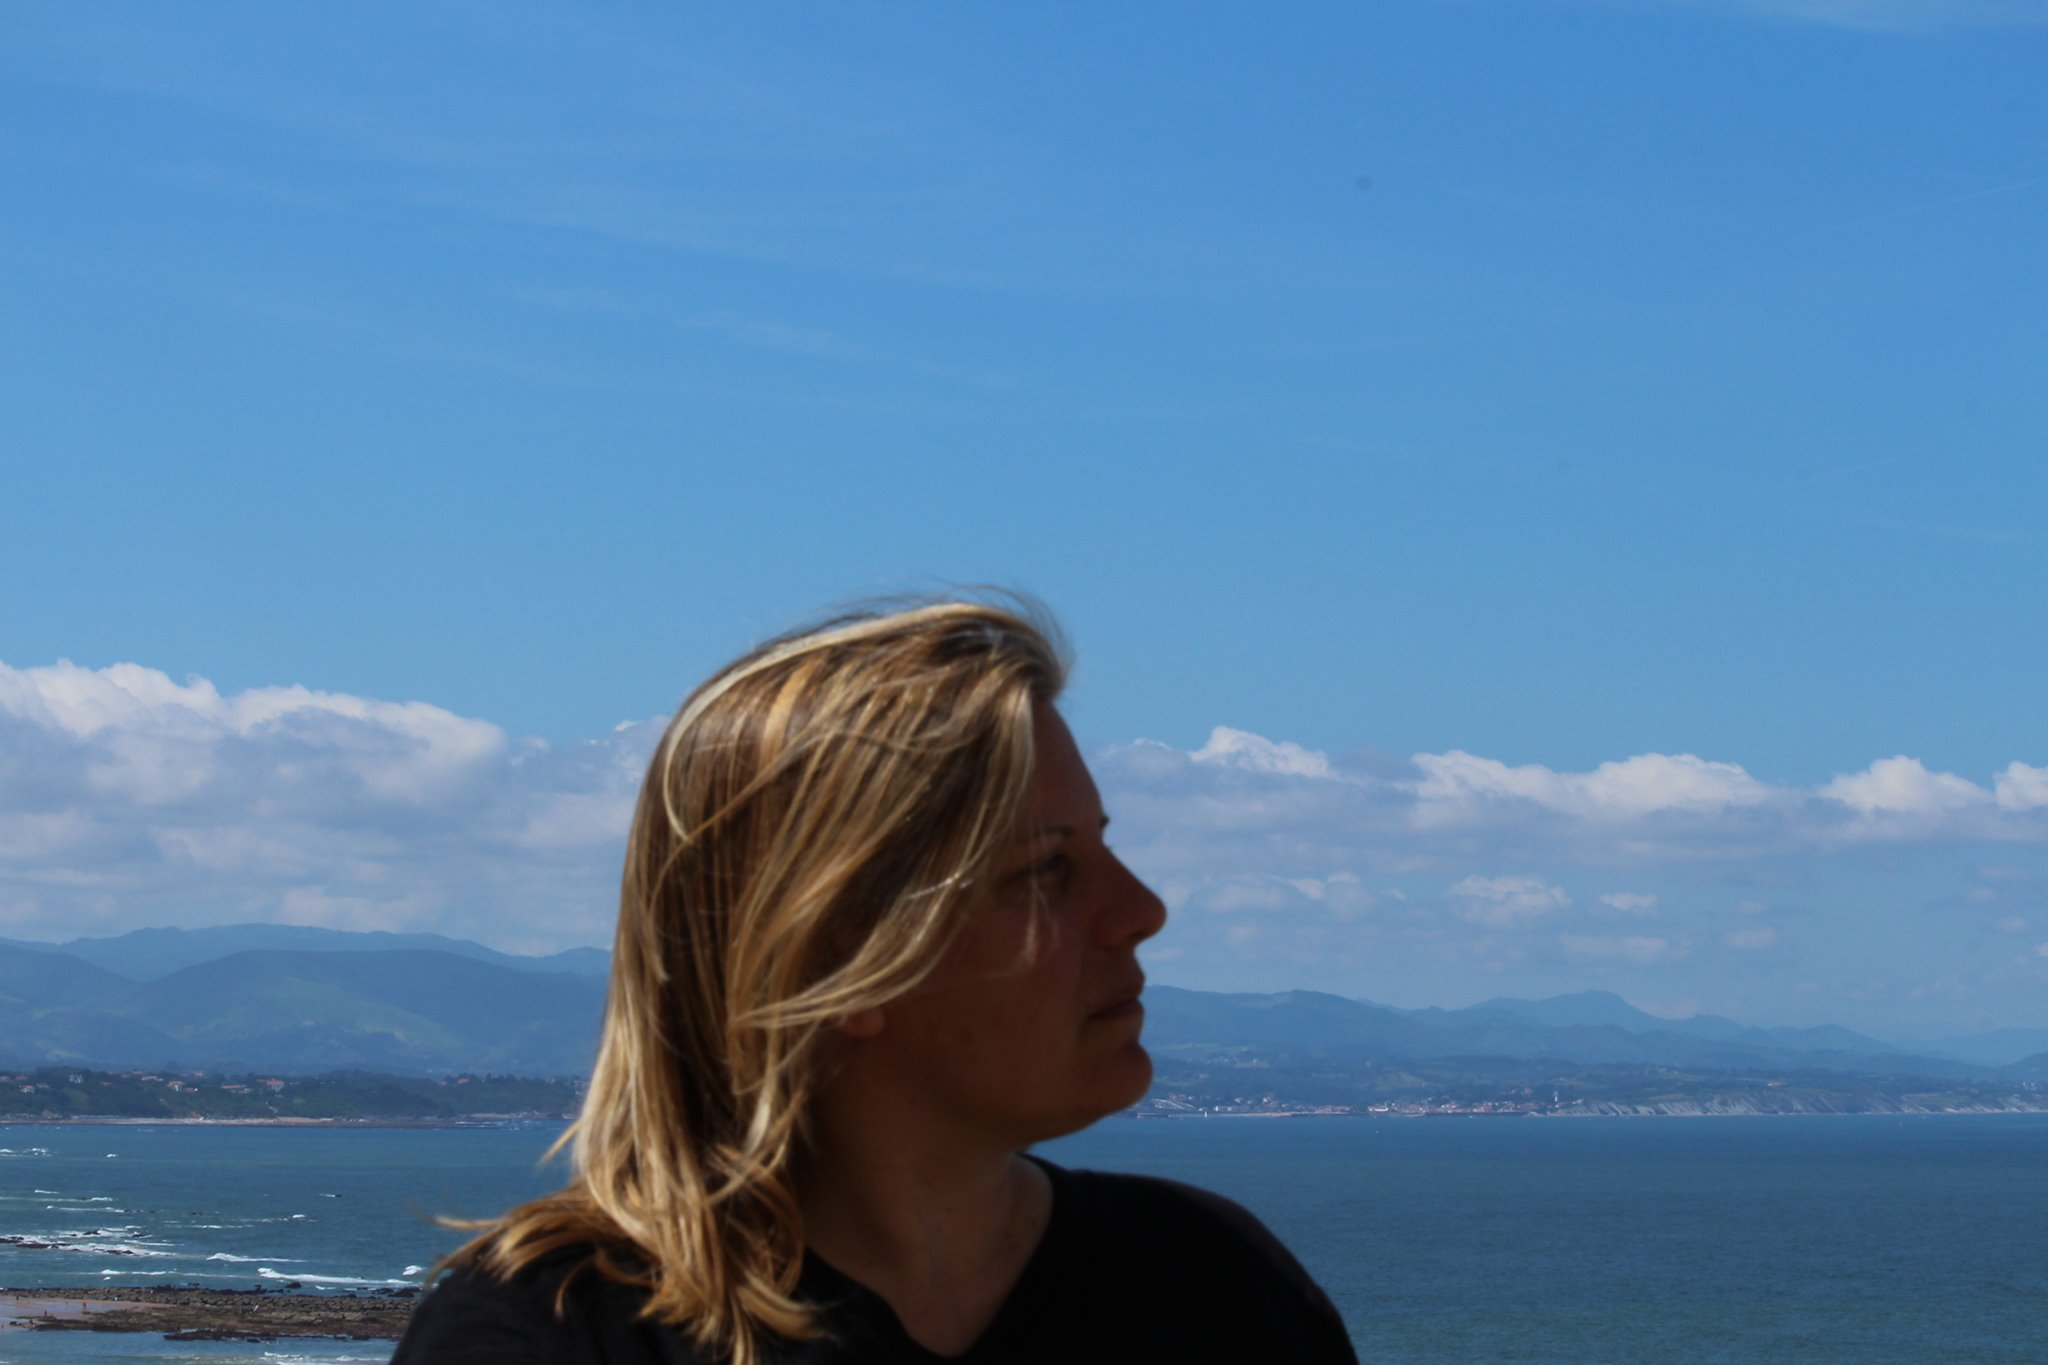 profile of head against background of ocean bay